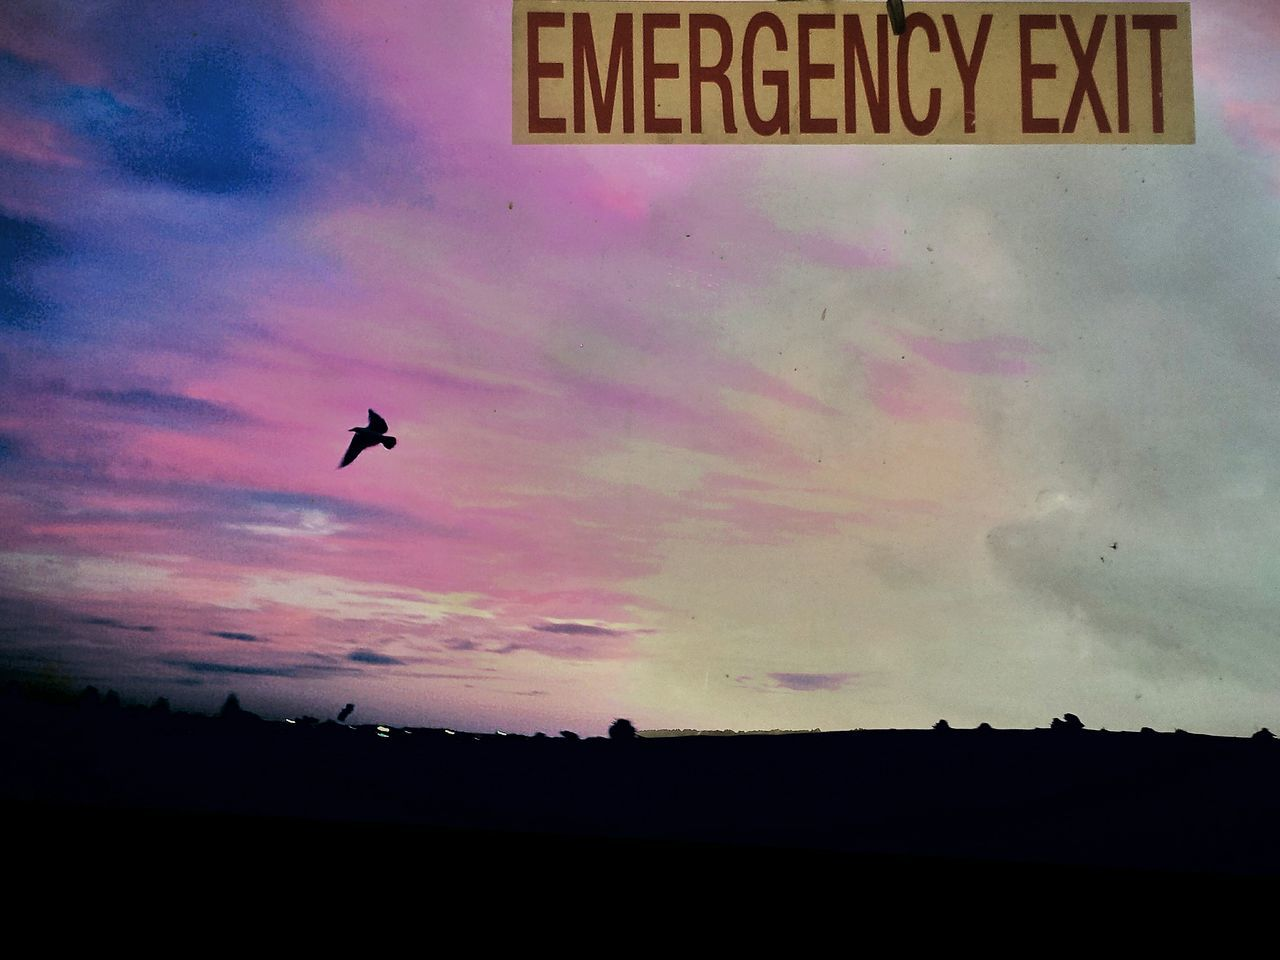 Flying Bird No People Animal Themes Outdoors Emergency Exit Escape Reality Escape From The City Exit Window Text Escape Hatch Taken For A Ride Exitsign Dramatic Sky Scenery Destination Windowview Window To The Soul Soul Searching Zen Mood Speeks To Me Lettering Idyllic Cloud - Sky